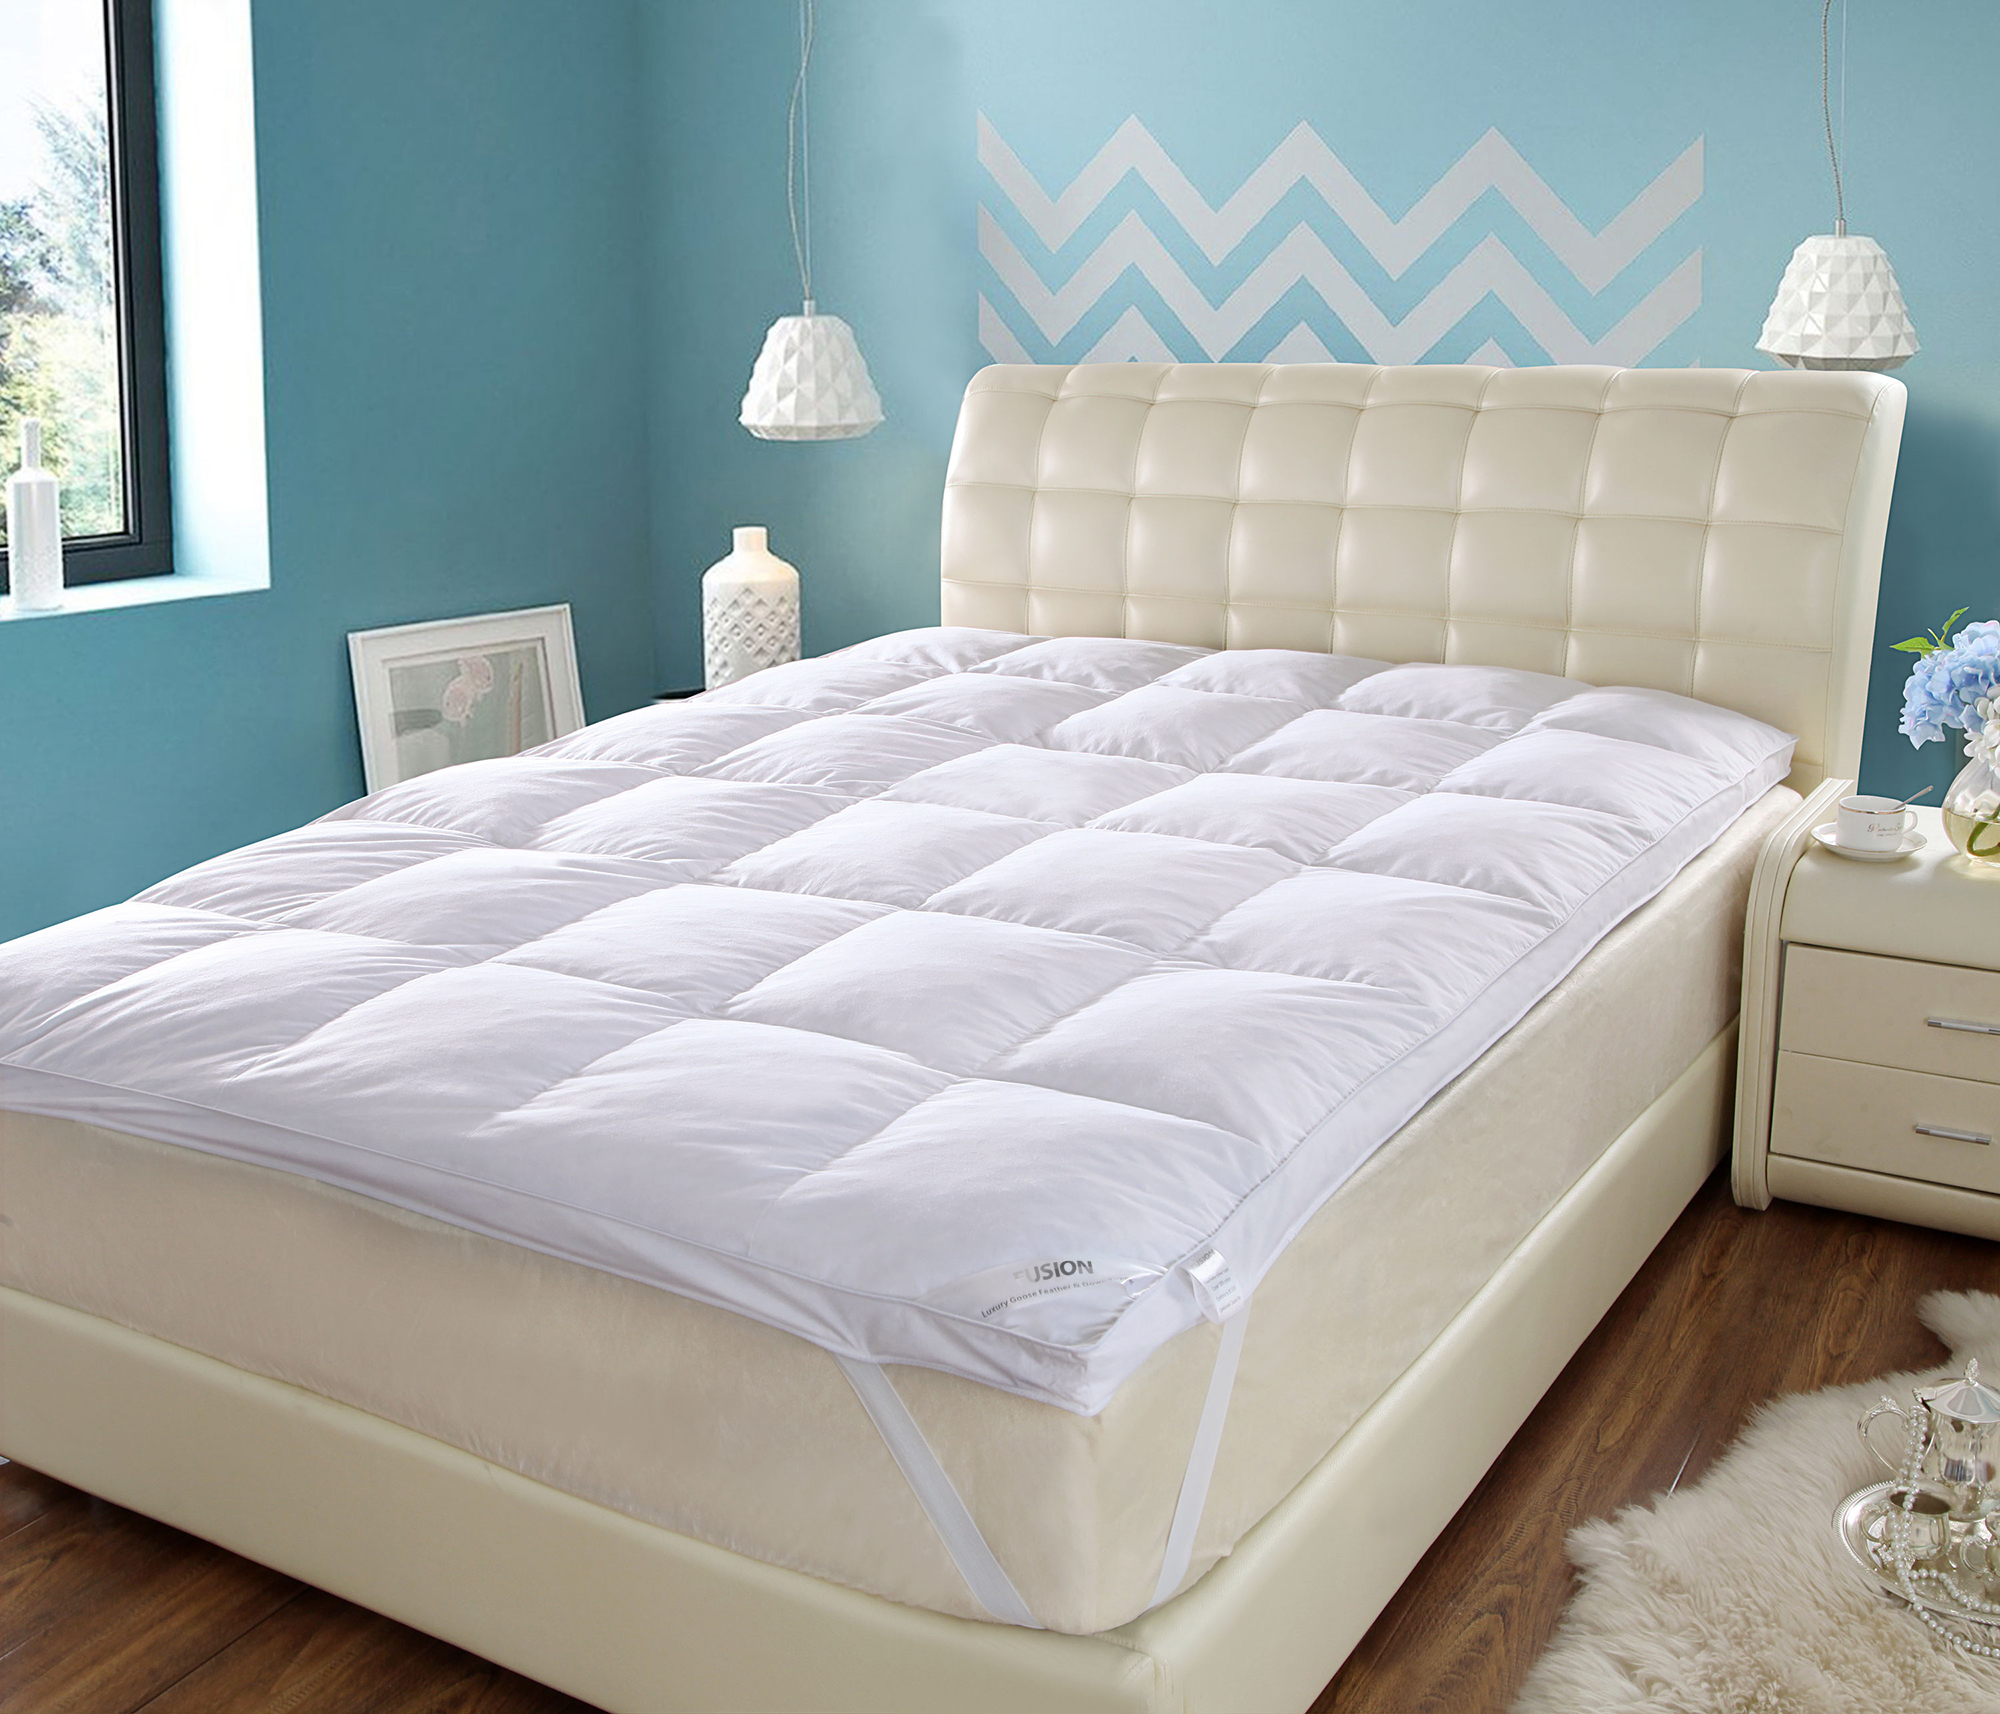 bed before topper overstock choosing com things featherbed guides featherbead to know feather a down